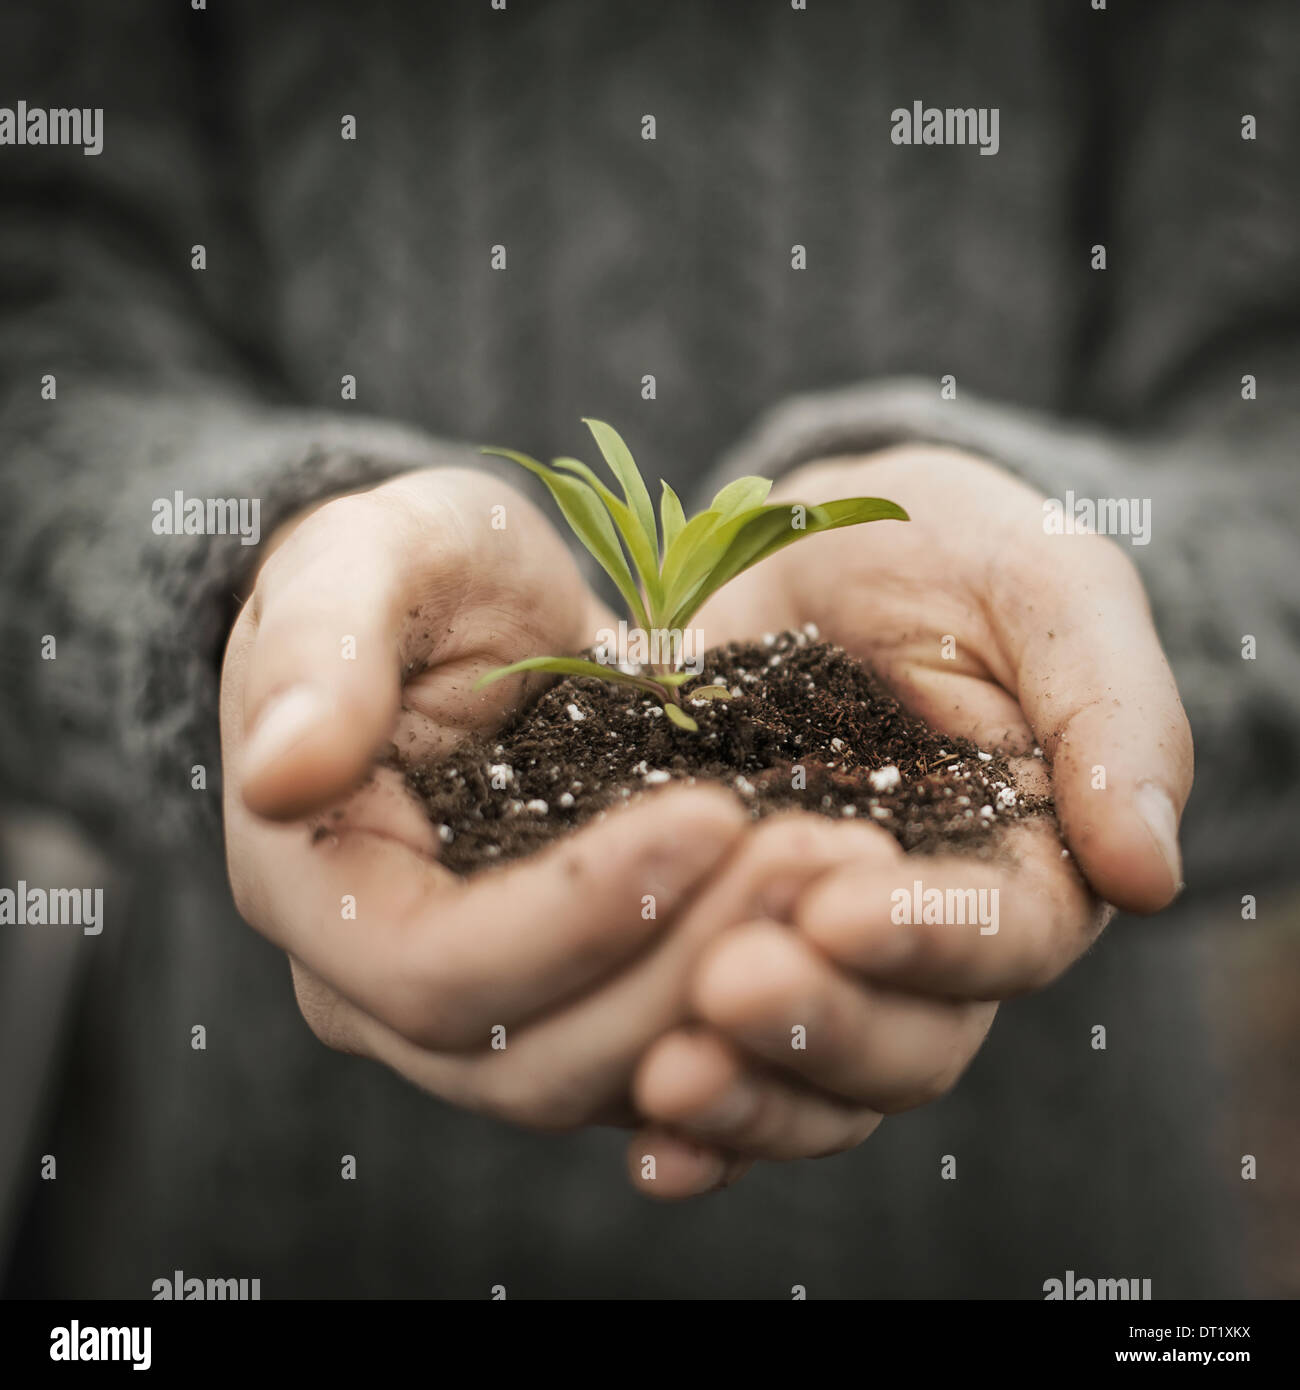 A person in a commercial glasshouse holding a small plant seedling in his cupped hands Stock Photo